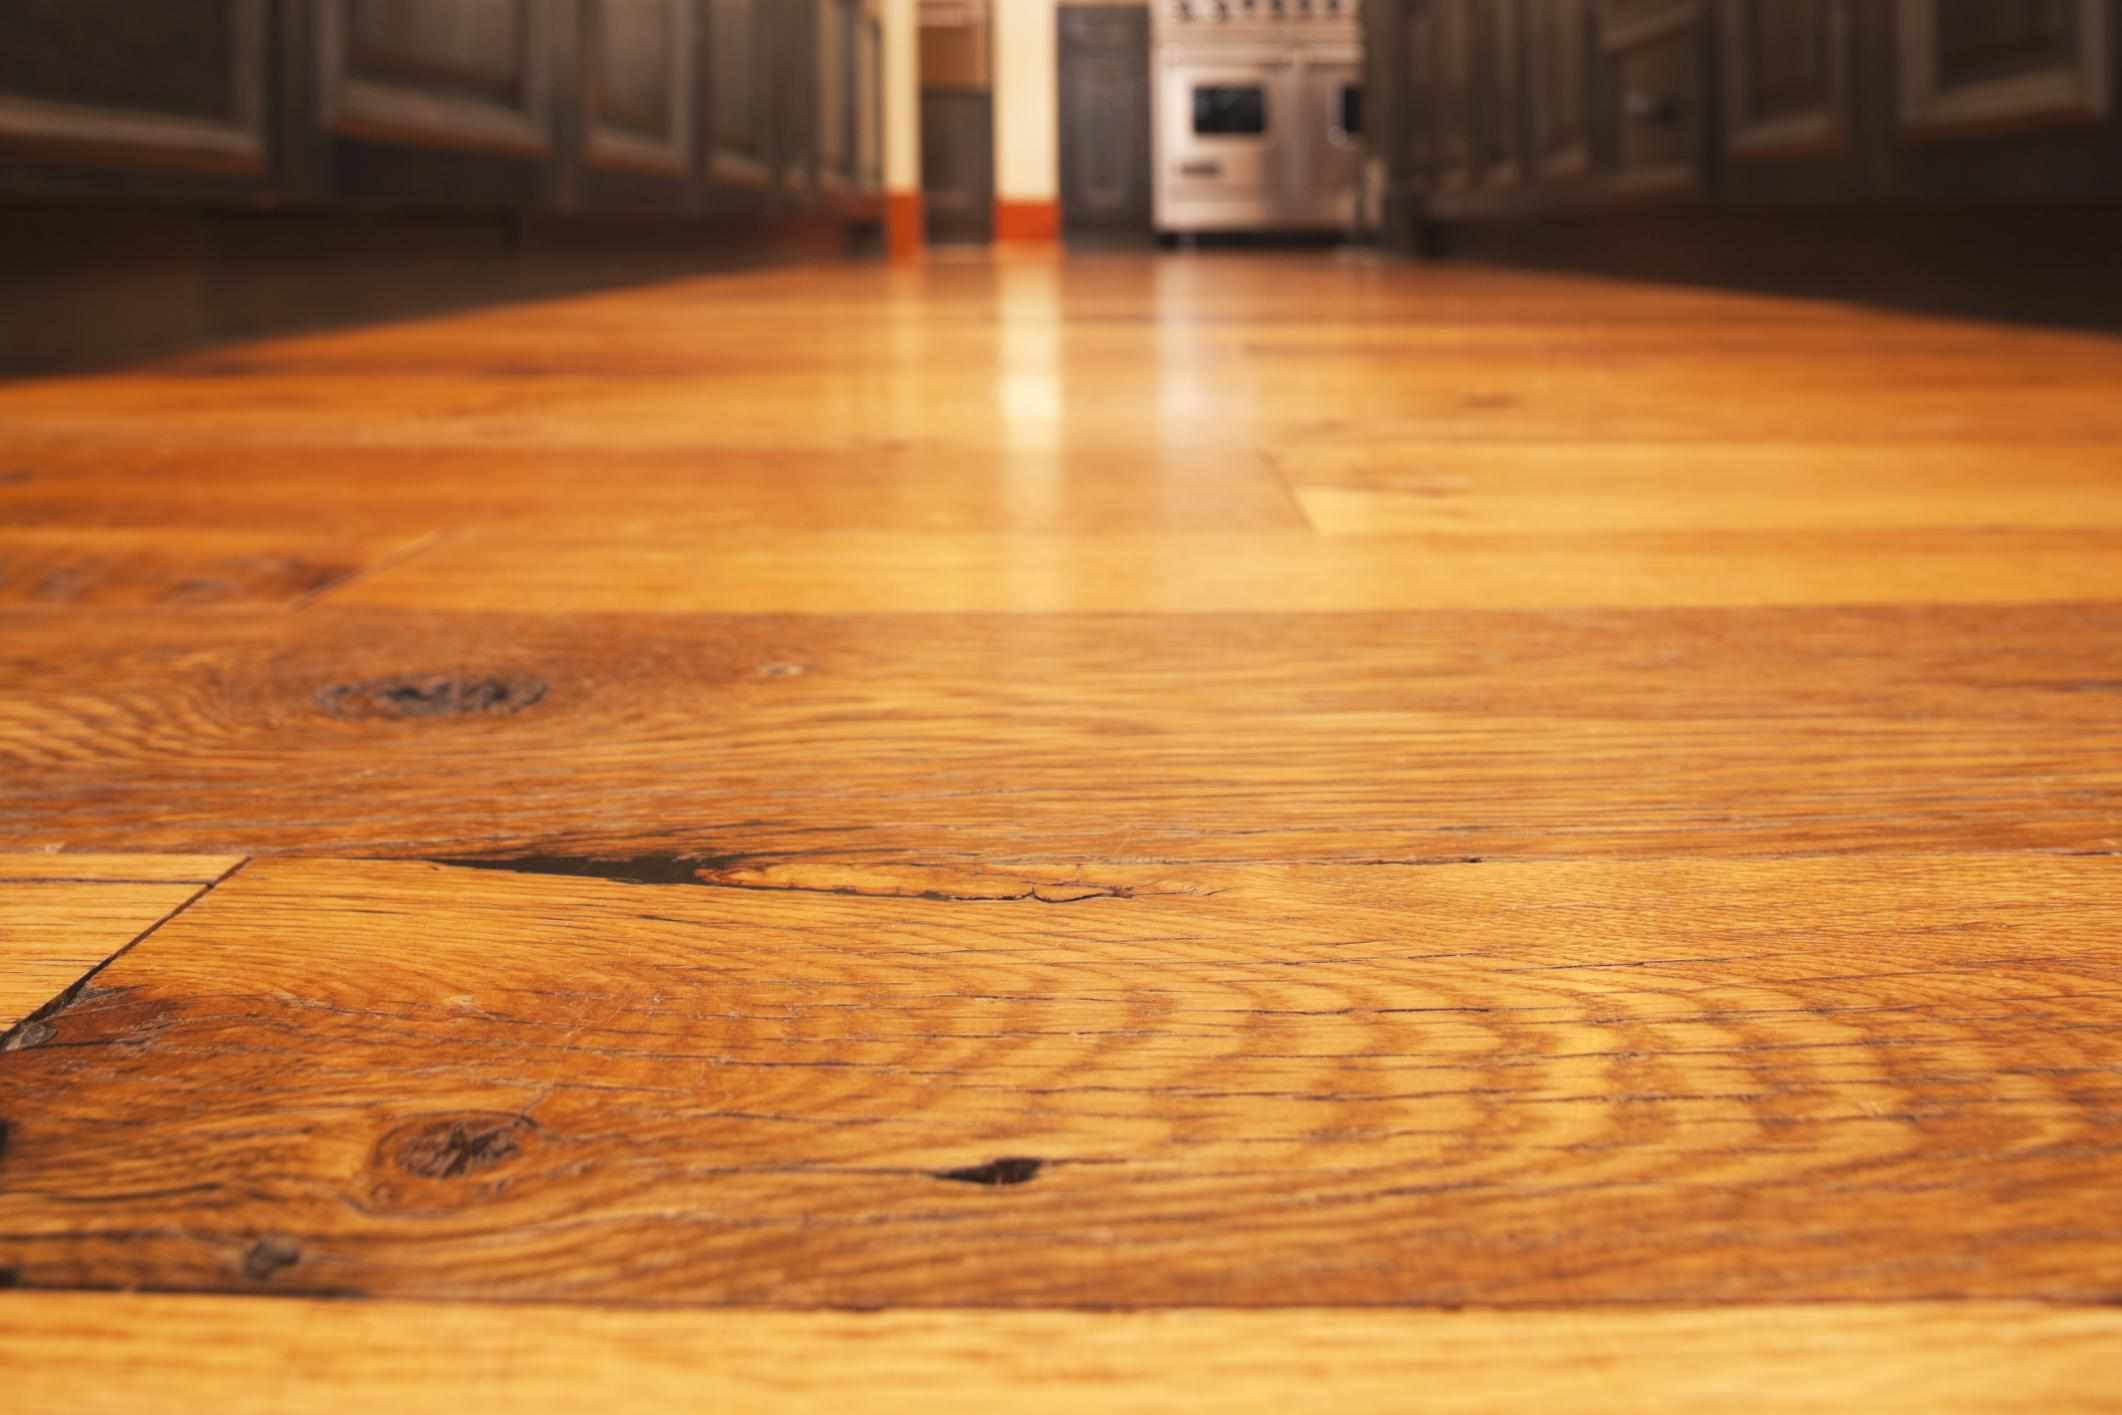 cost to sand and stain hardwood floors of how much to refinish wood floors how to sand hardwood floors floor pertaining to how much to refinish wood floors how to sand hardwood floors